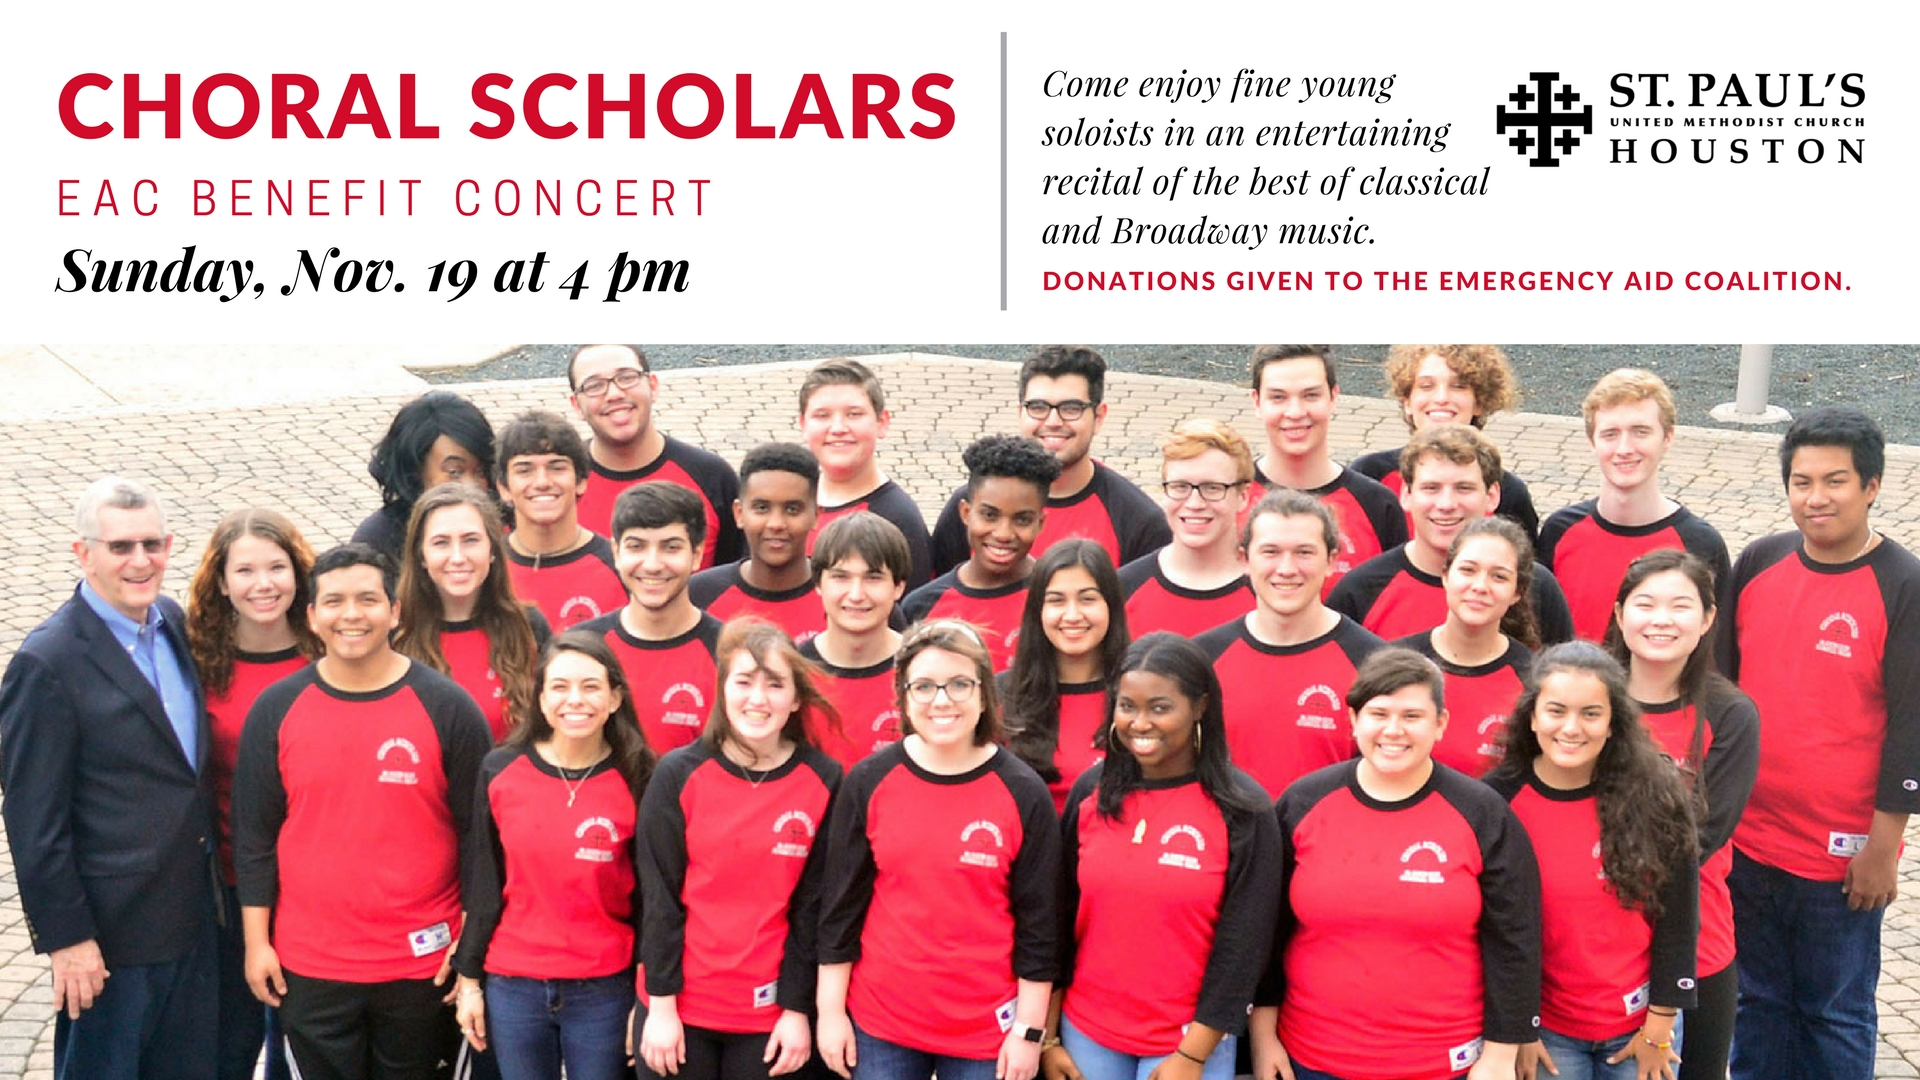 16x9 Choral Scholars EAC Benefit Concert.jpg